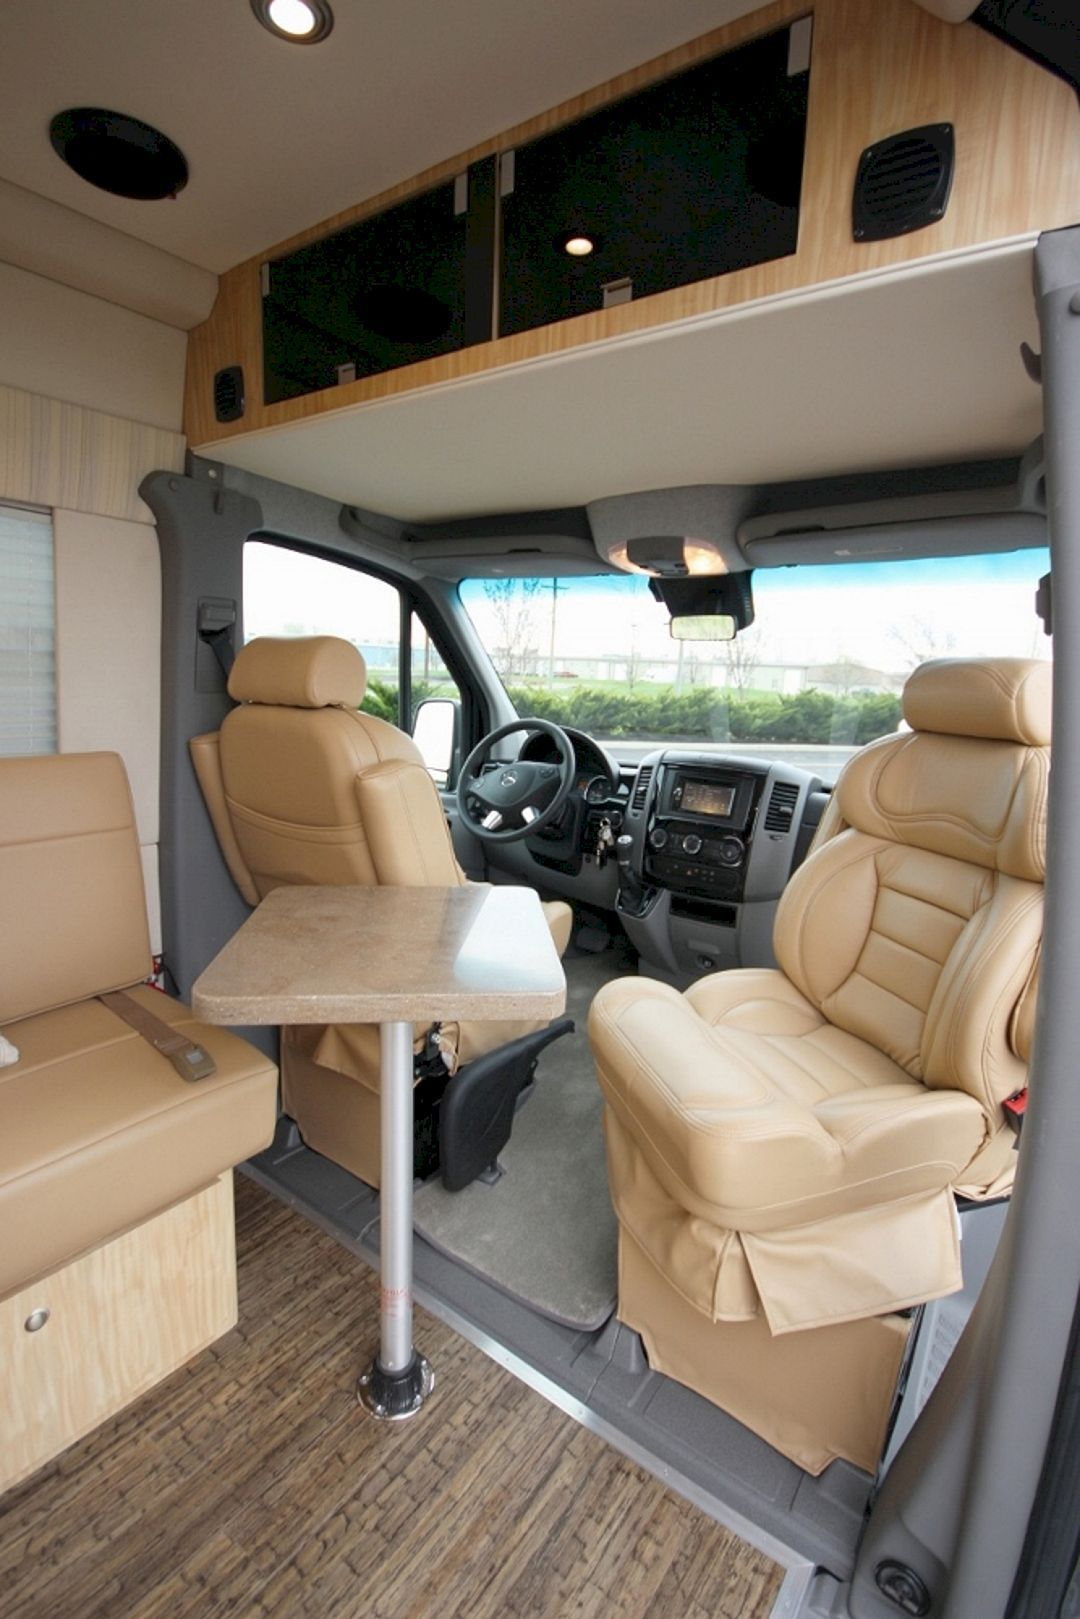 The Best 4x4 Mercedes Sprinter Hacks Remodel And Conversion 27 Ideas